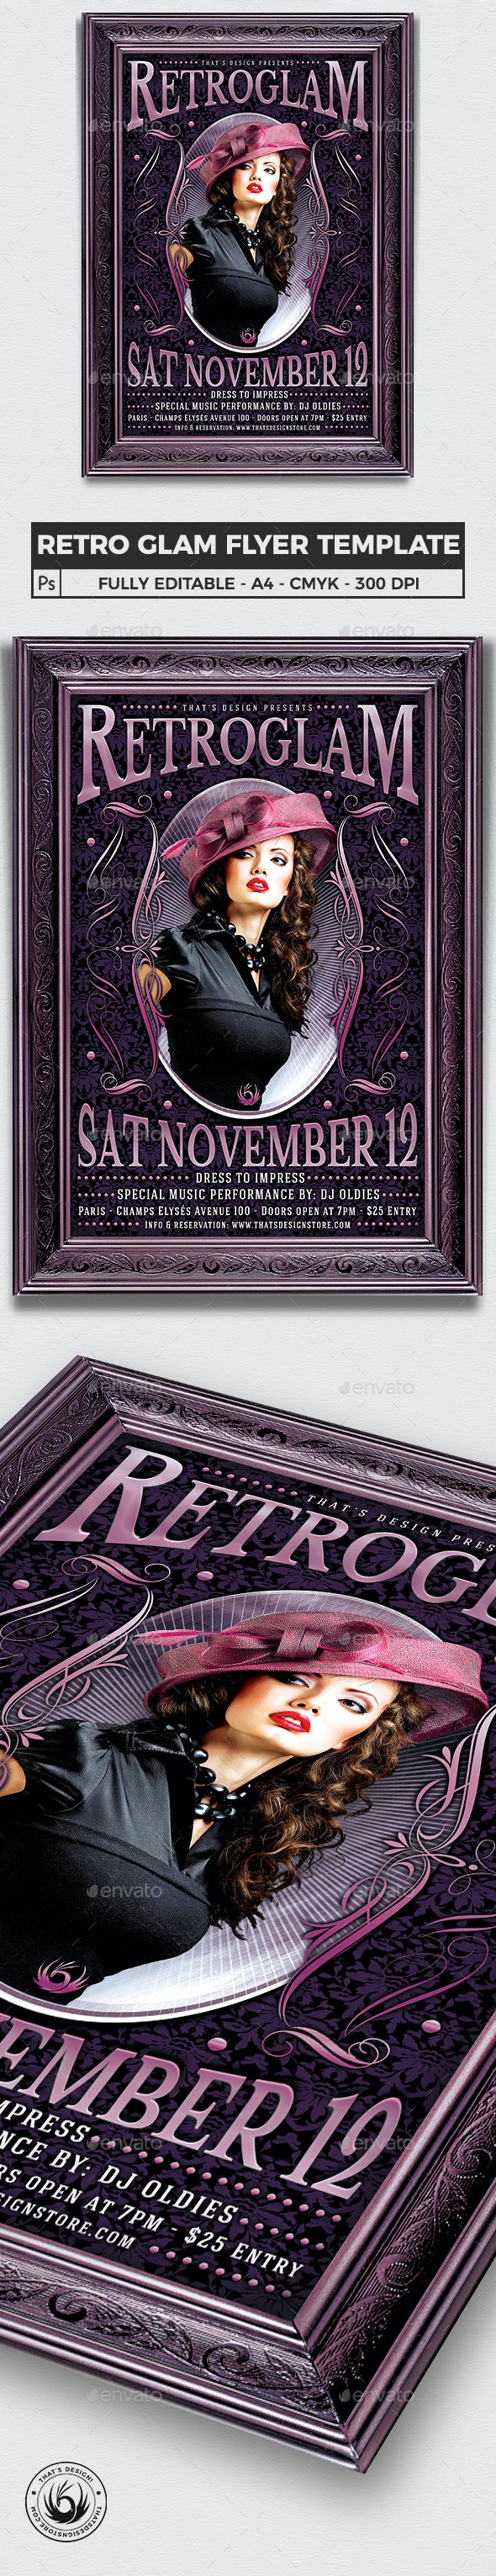 Retro Glam Flyer Template V3 - Clubs & Parties Events